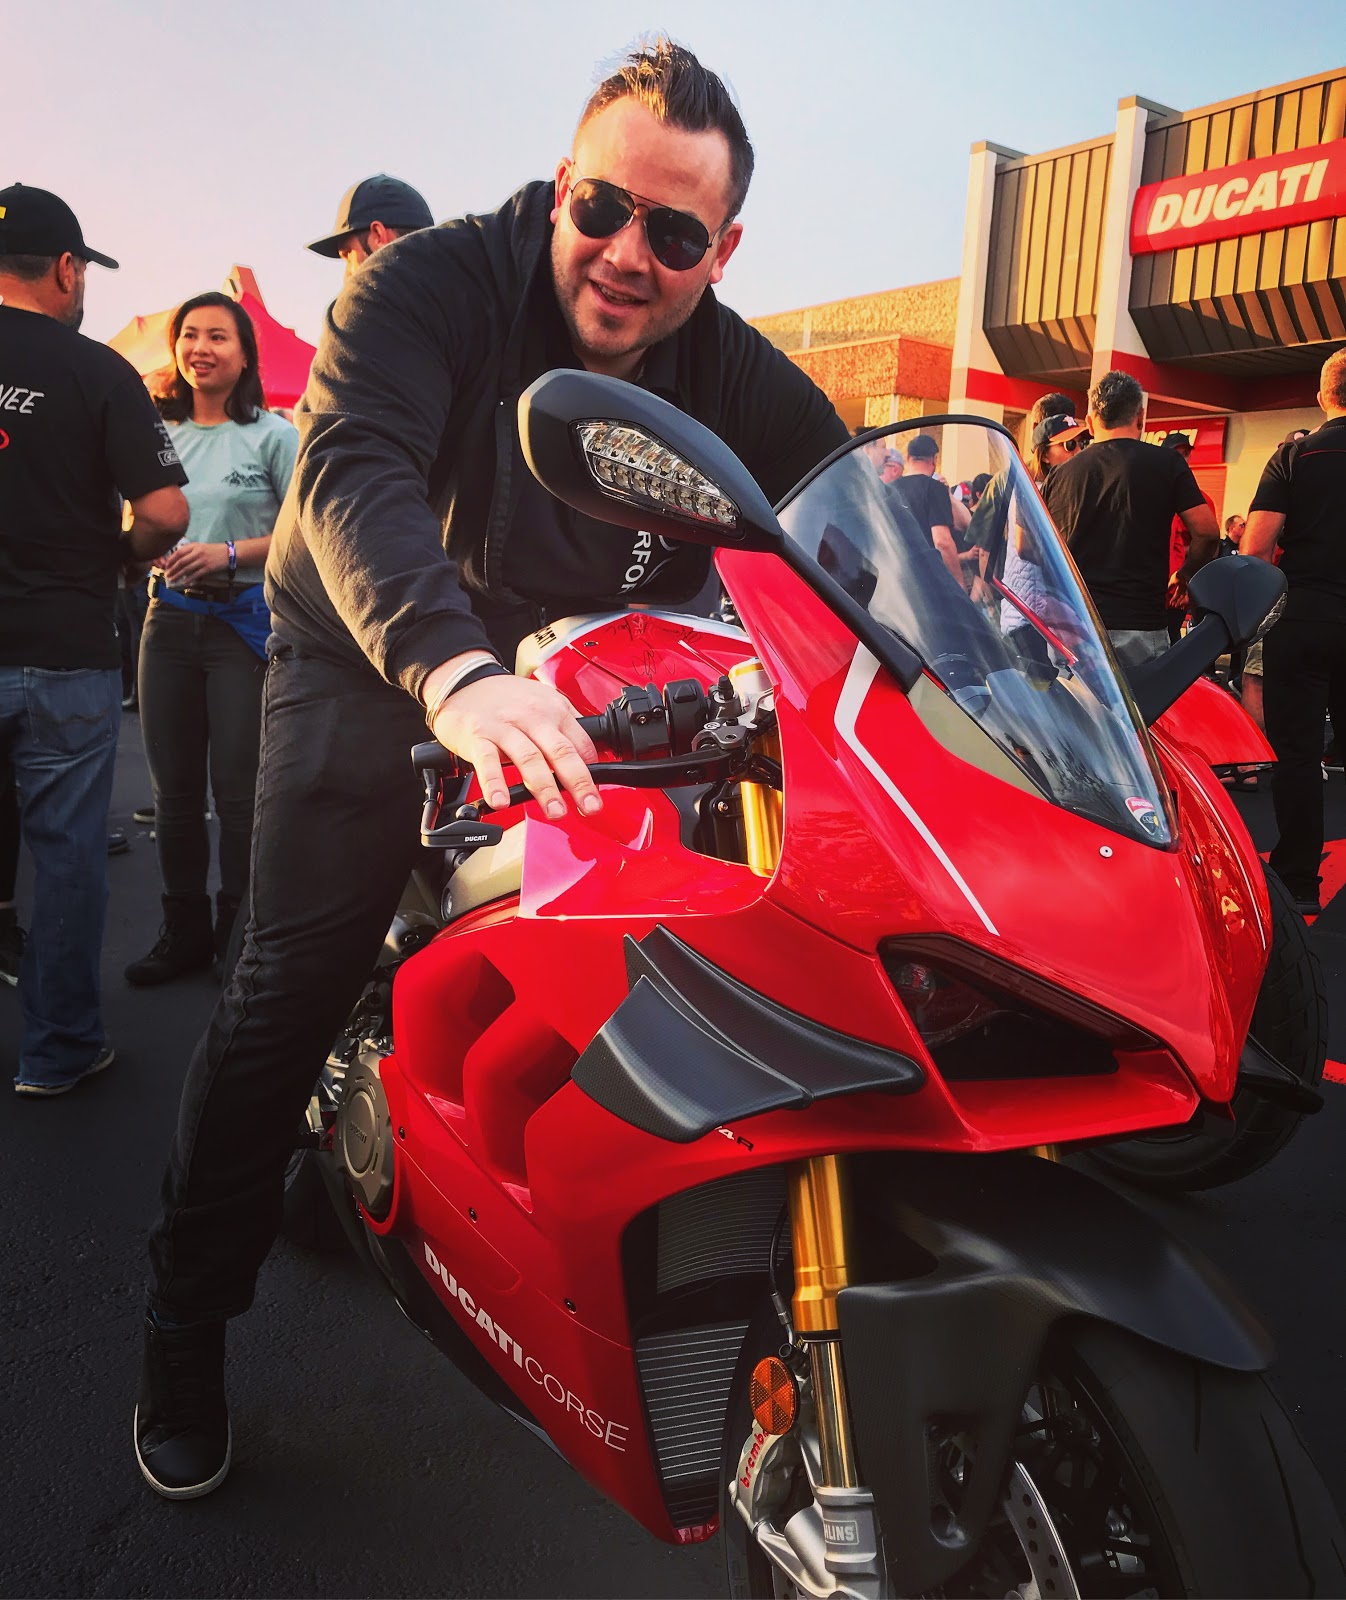 Tigh Loughhead of Gotham Ducati Desmo Owners Club at Ducati Austin MotoGP Party on a Panigale V4R